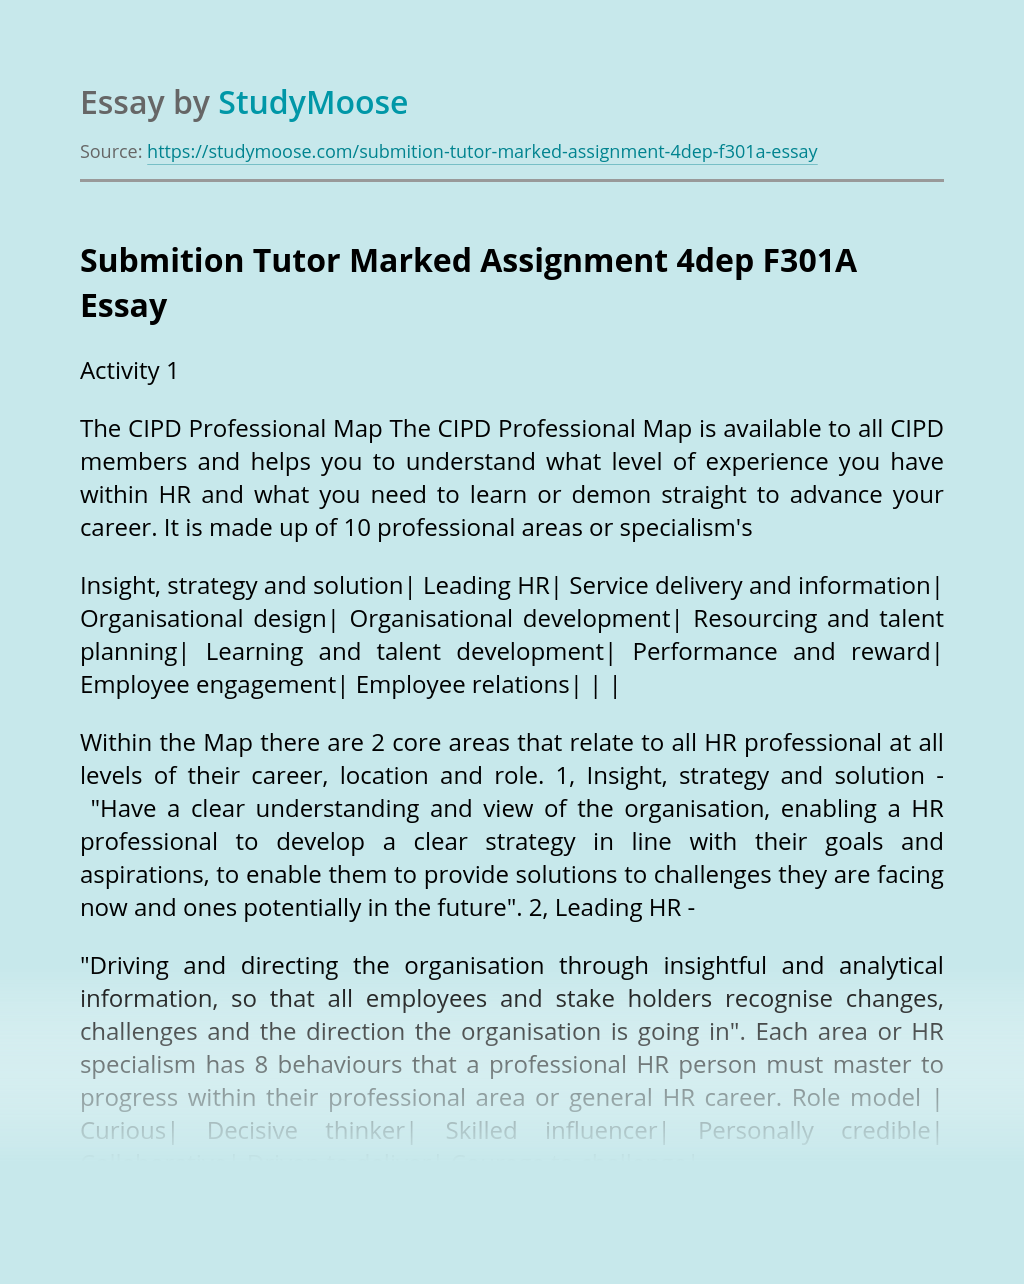 Submition Tutor Marked Assignment 4dep F301A